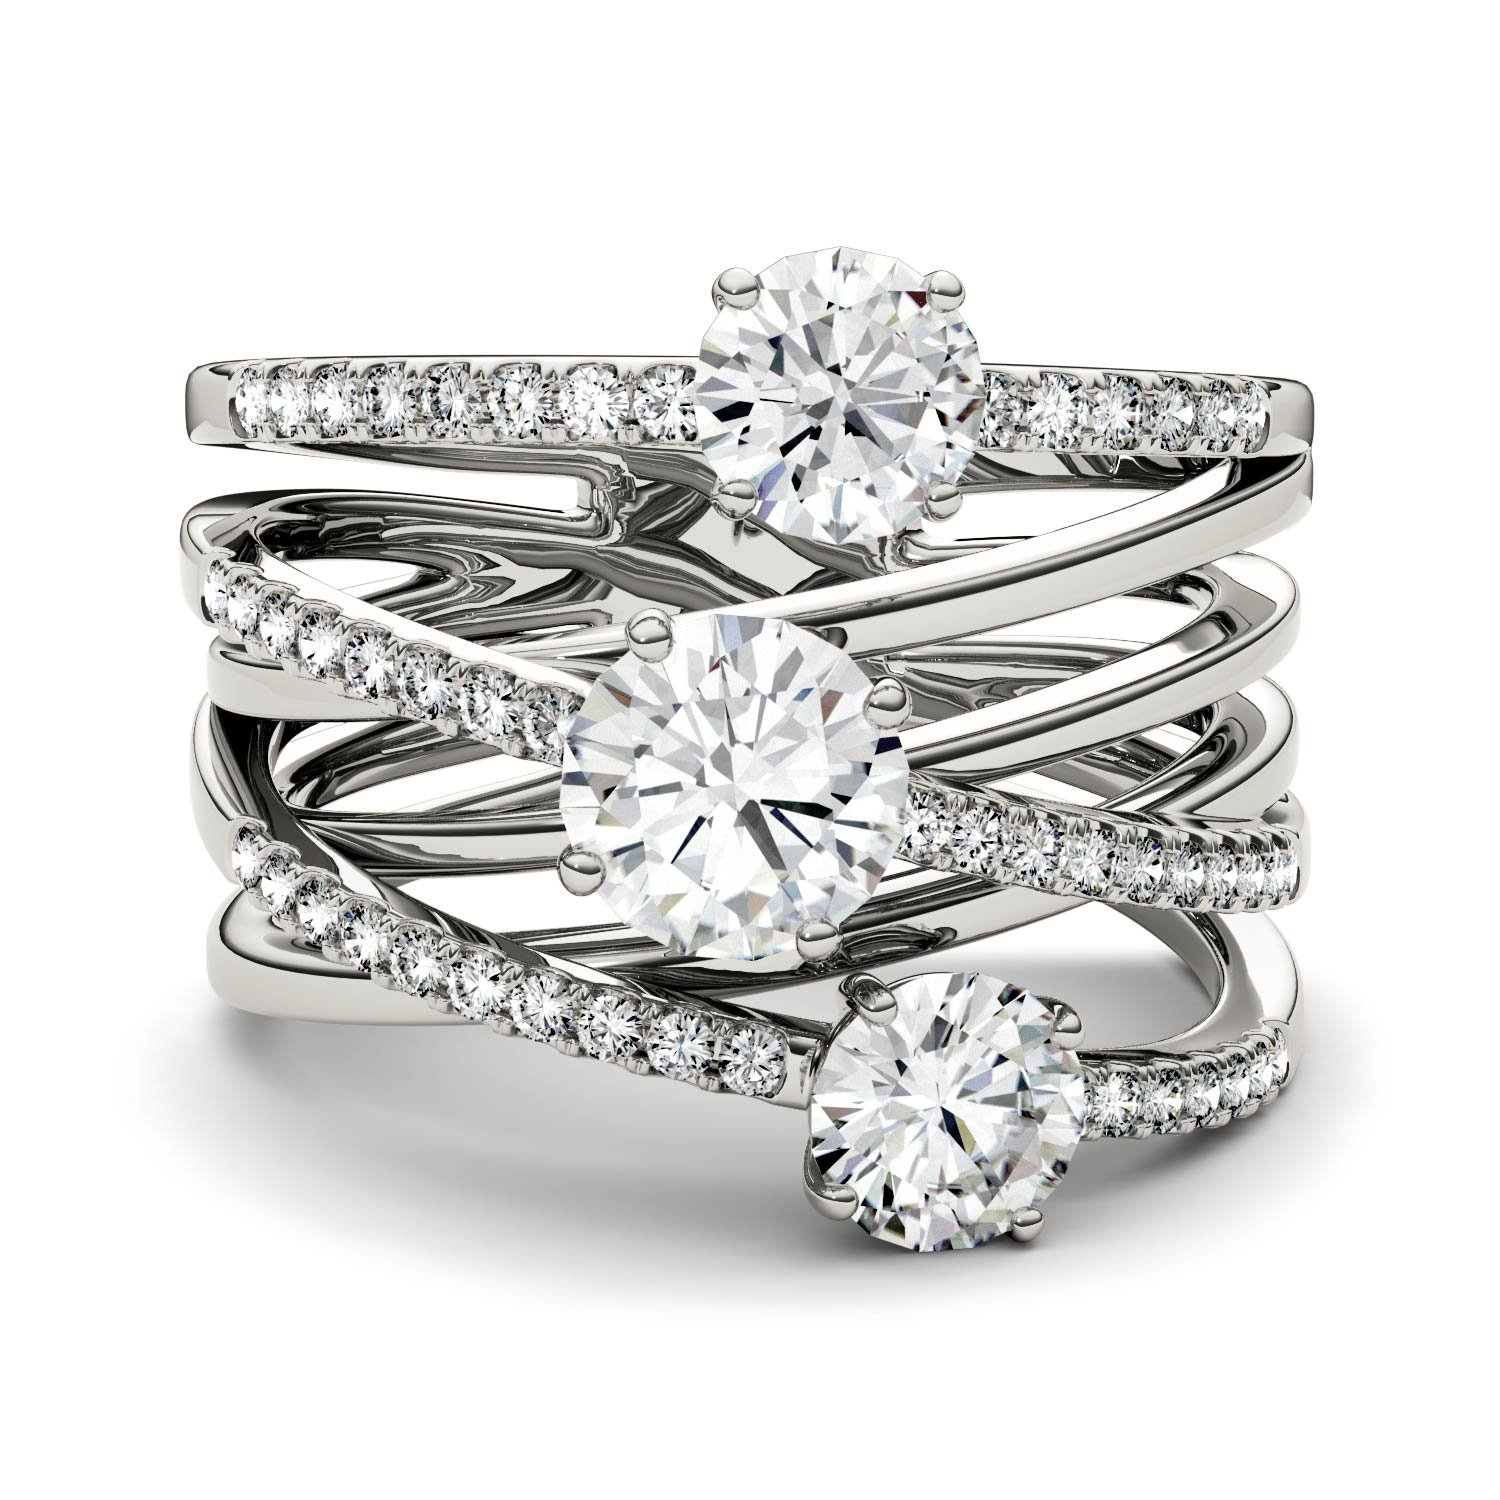 Forever Brilliant Round 6.0mm Moissanite Band Style Ring-size 6, 2.28cttw DEW By Charles & Colvard by Charles & Colvard (Image #4)